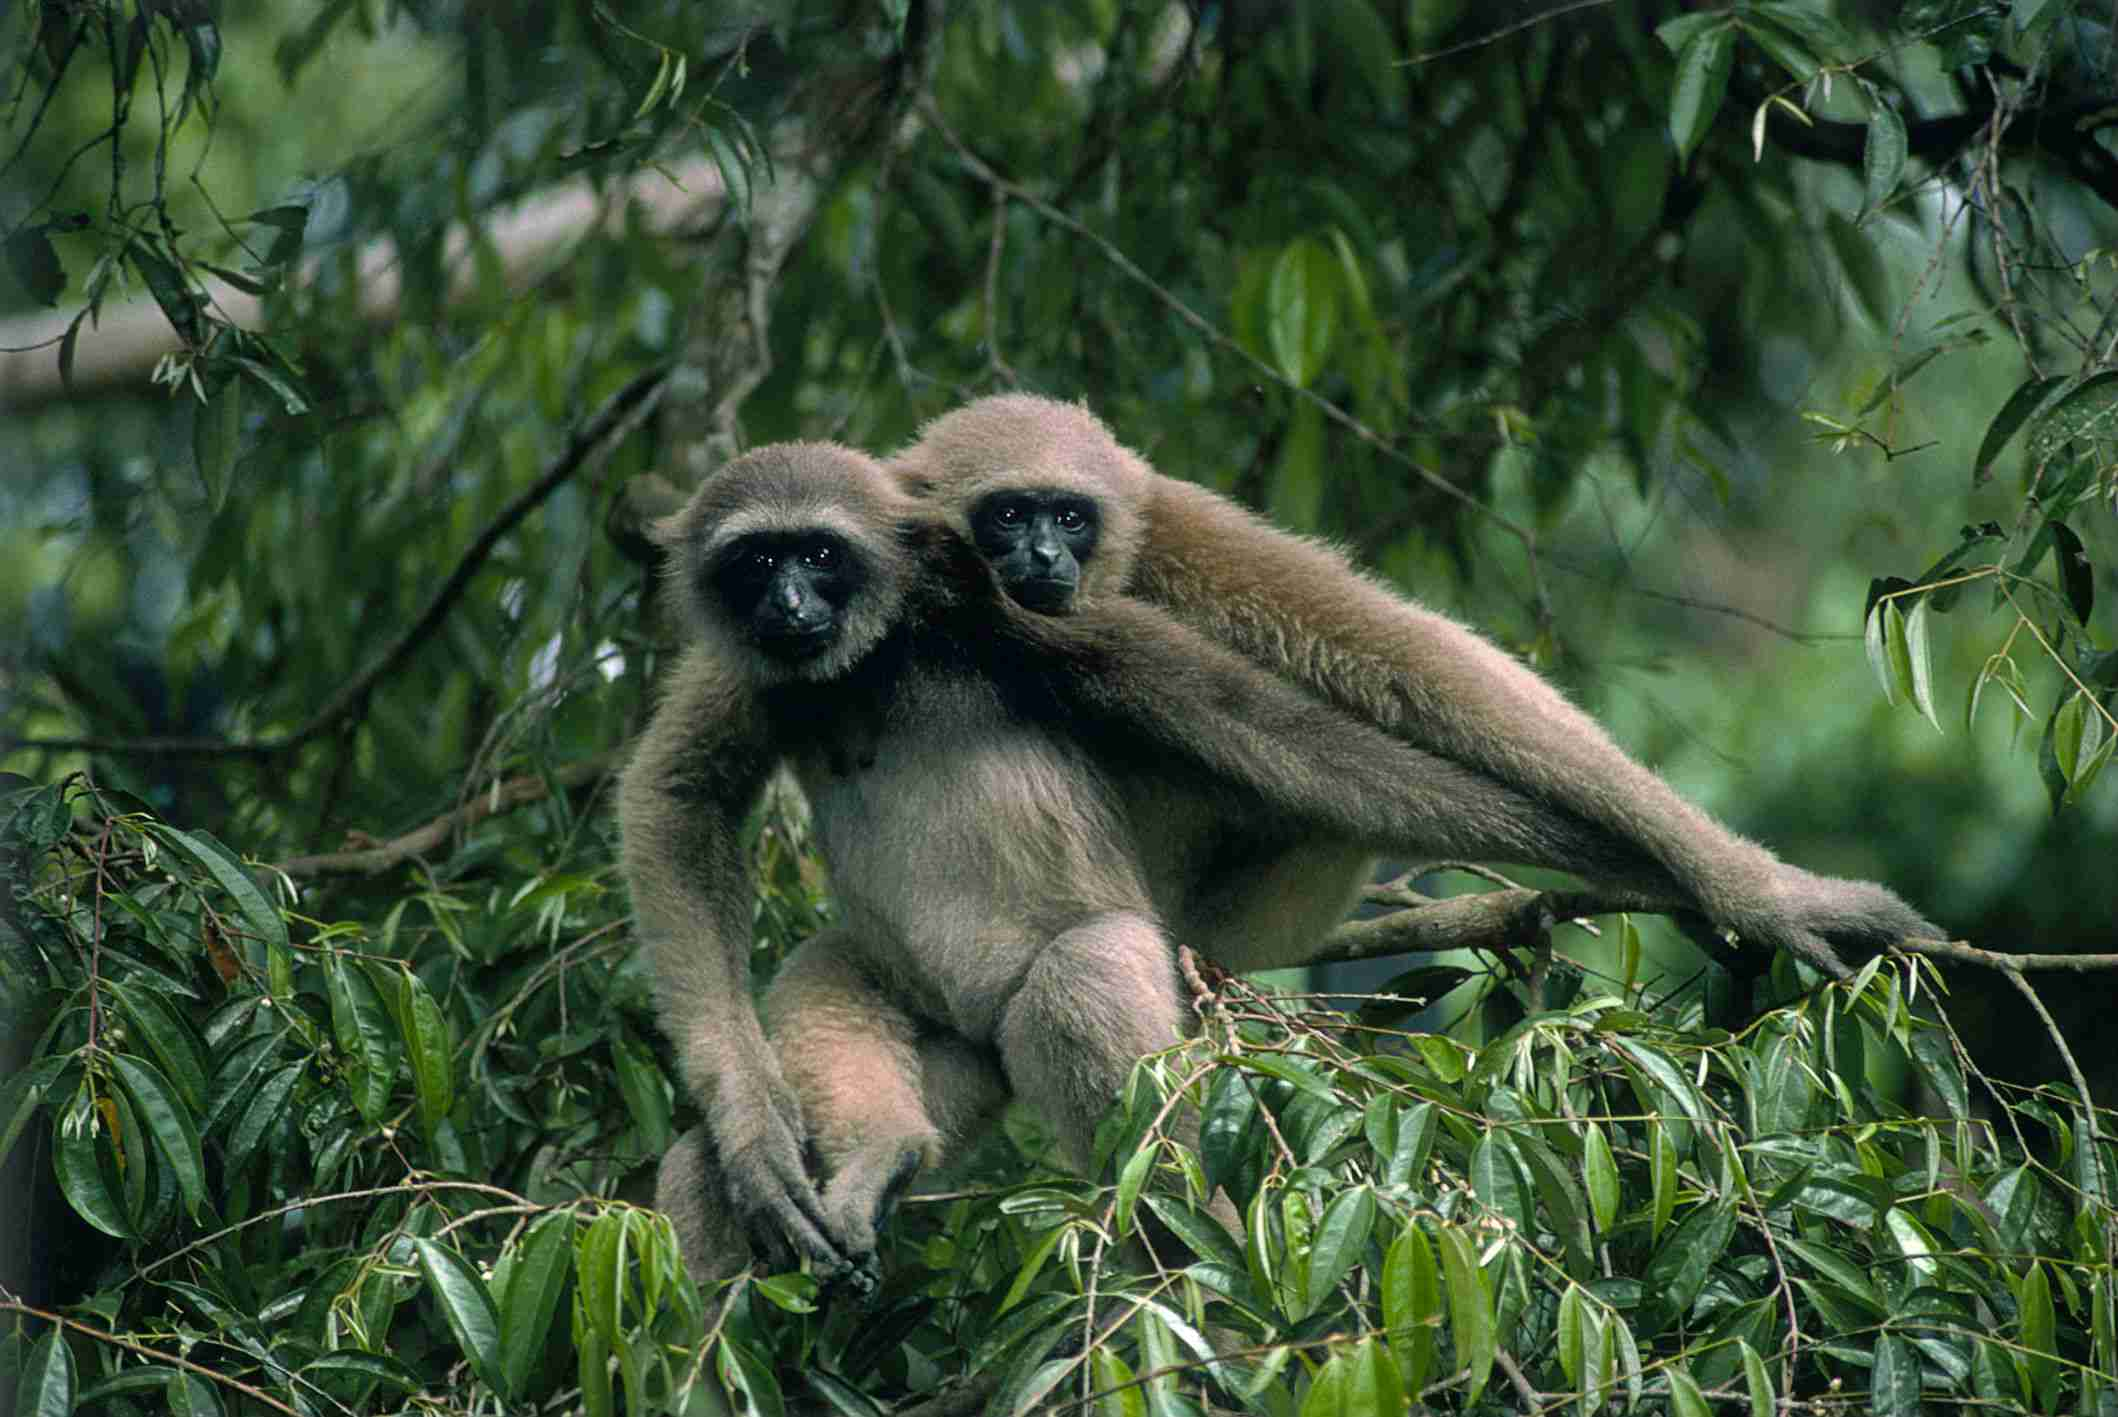 Pair of gibbons resting in a tree.